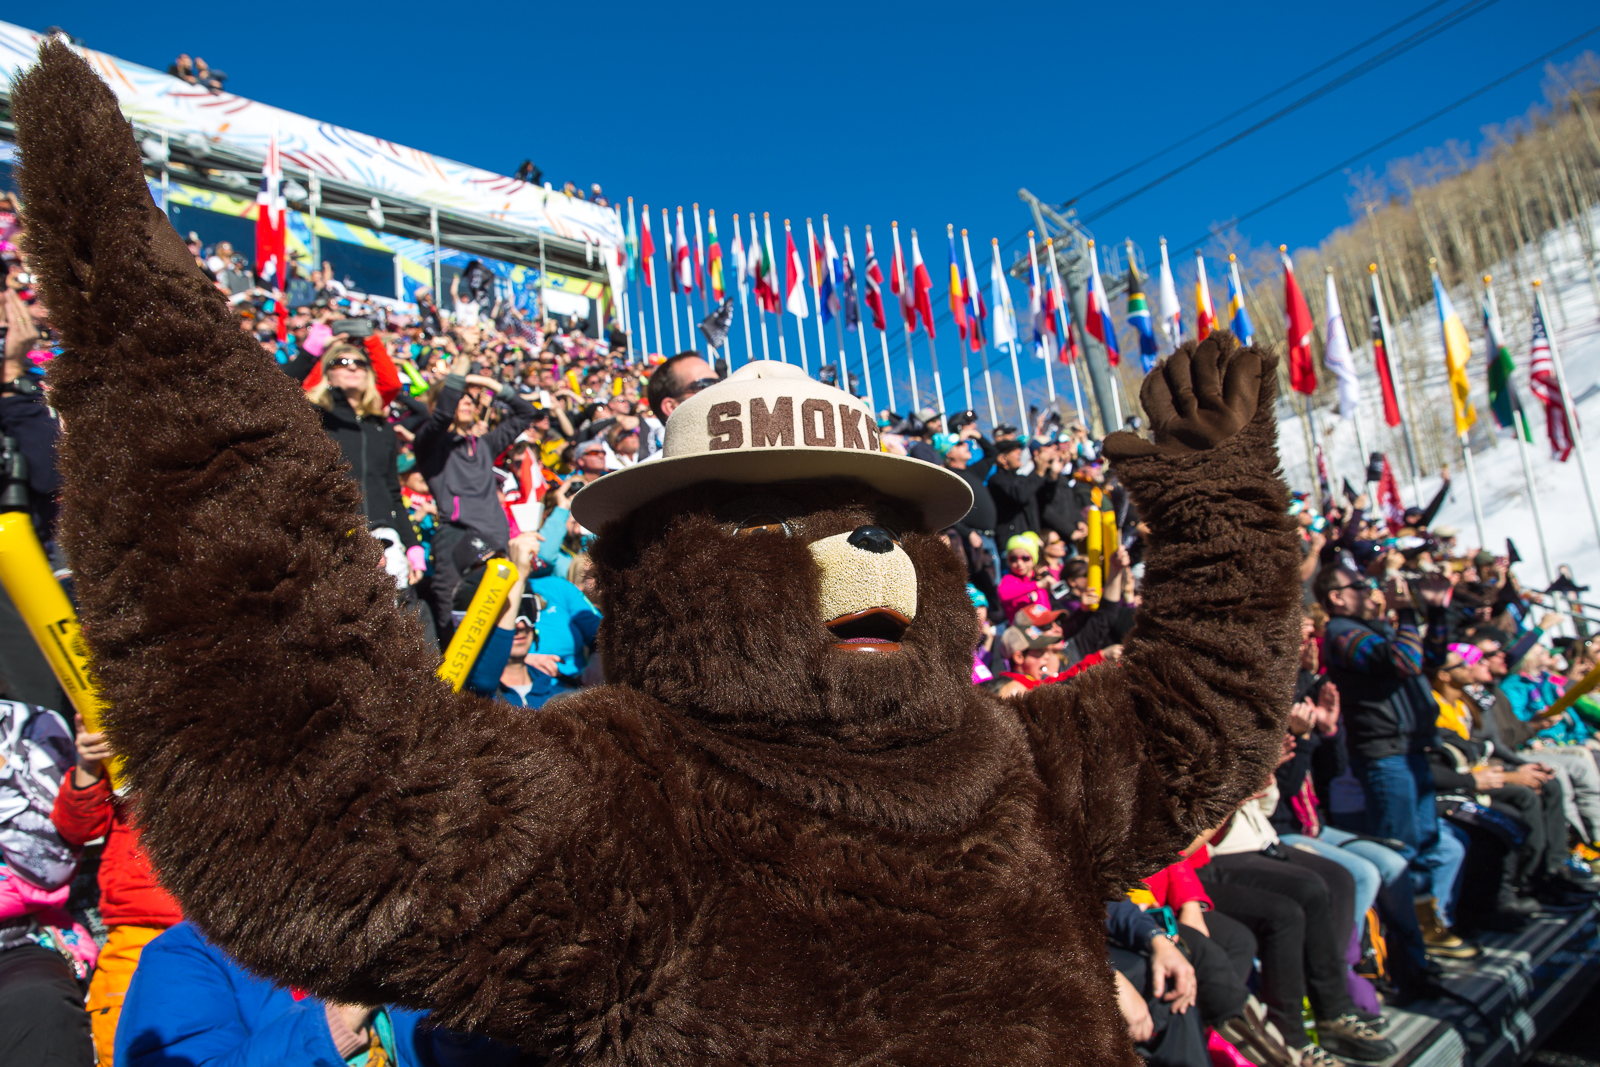 A picture of Smokey Bear in a crowd in the stands with his hands raised high in the air.